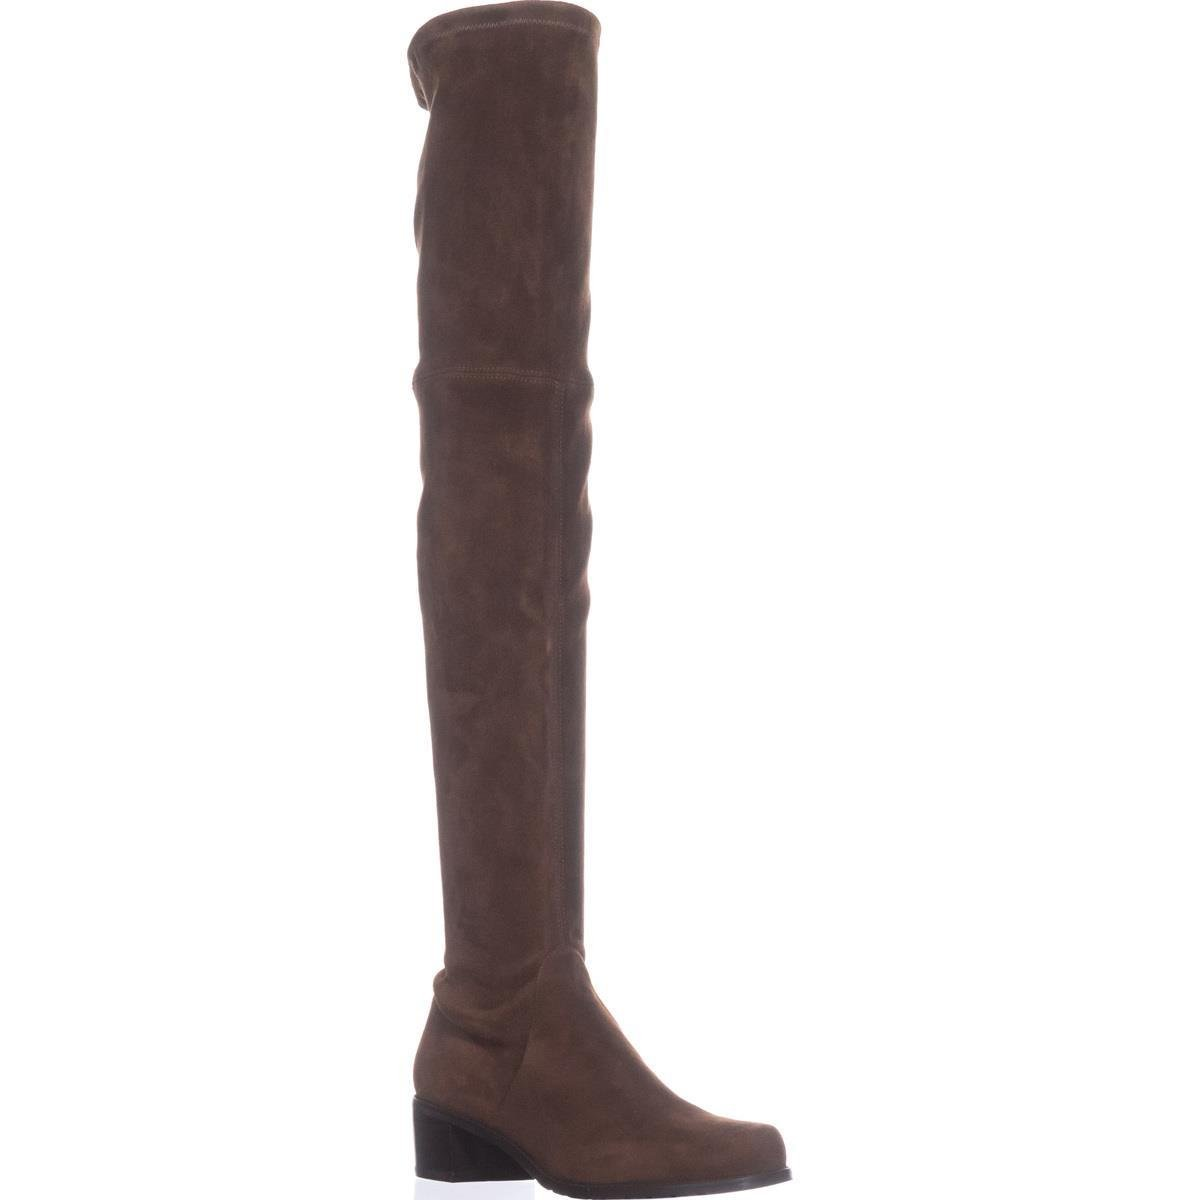 Stuart Weitzman Women's Midland Over The Knee Boot B01C8LU4C2 9 B(M) US|Walnut